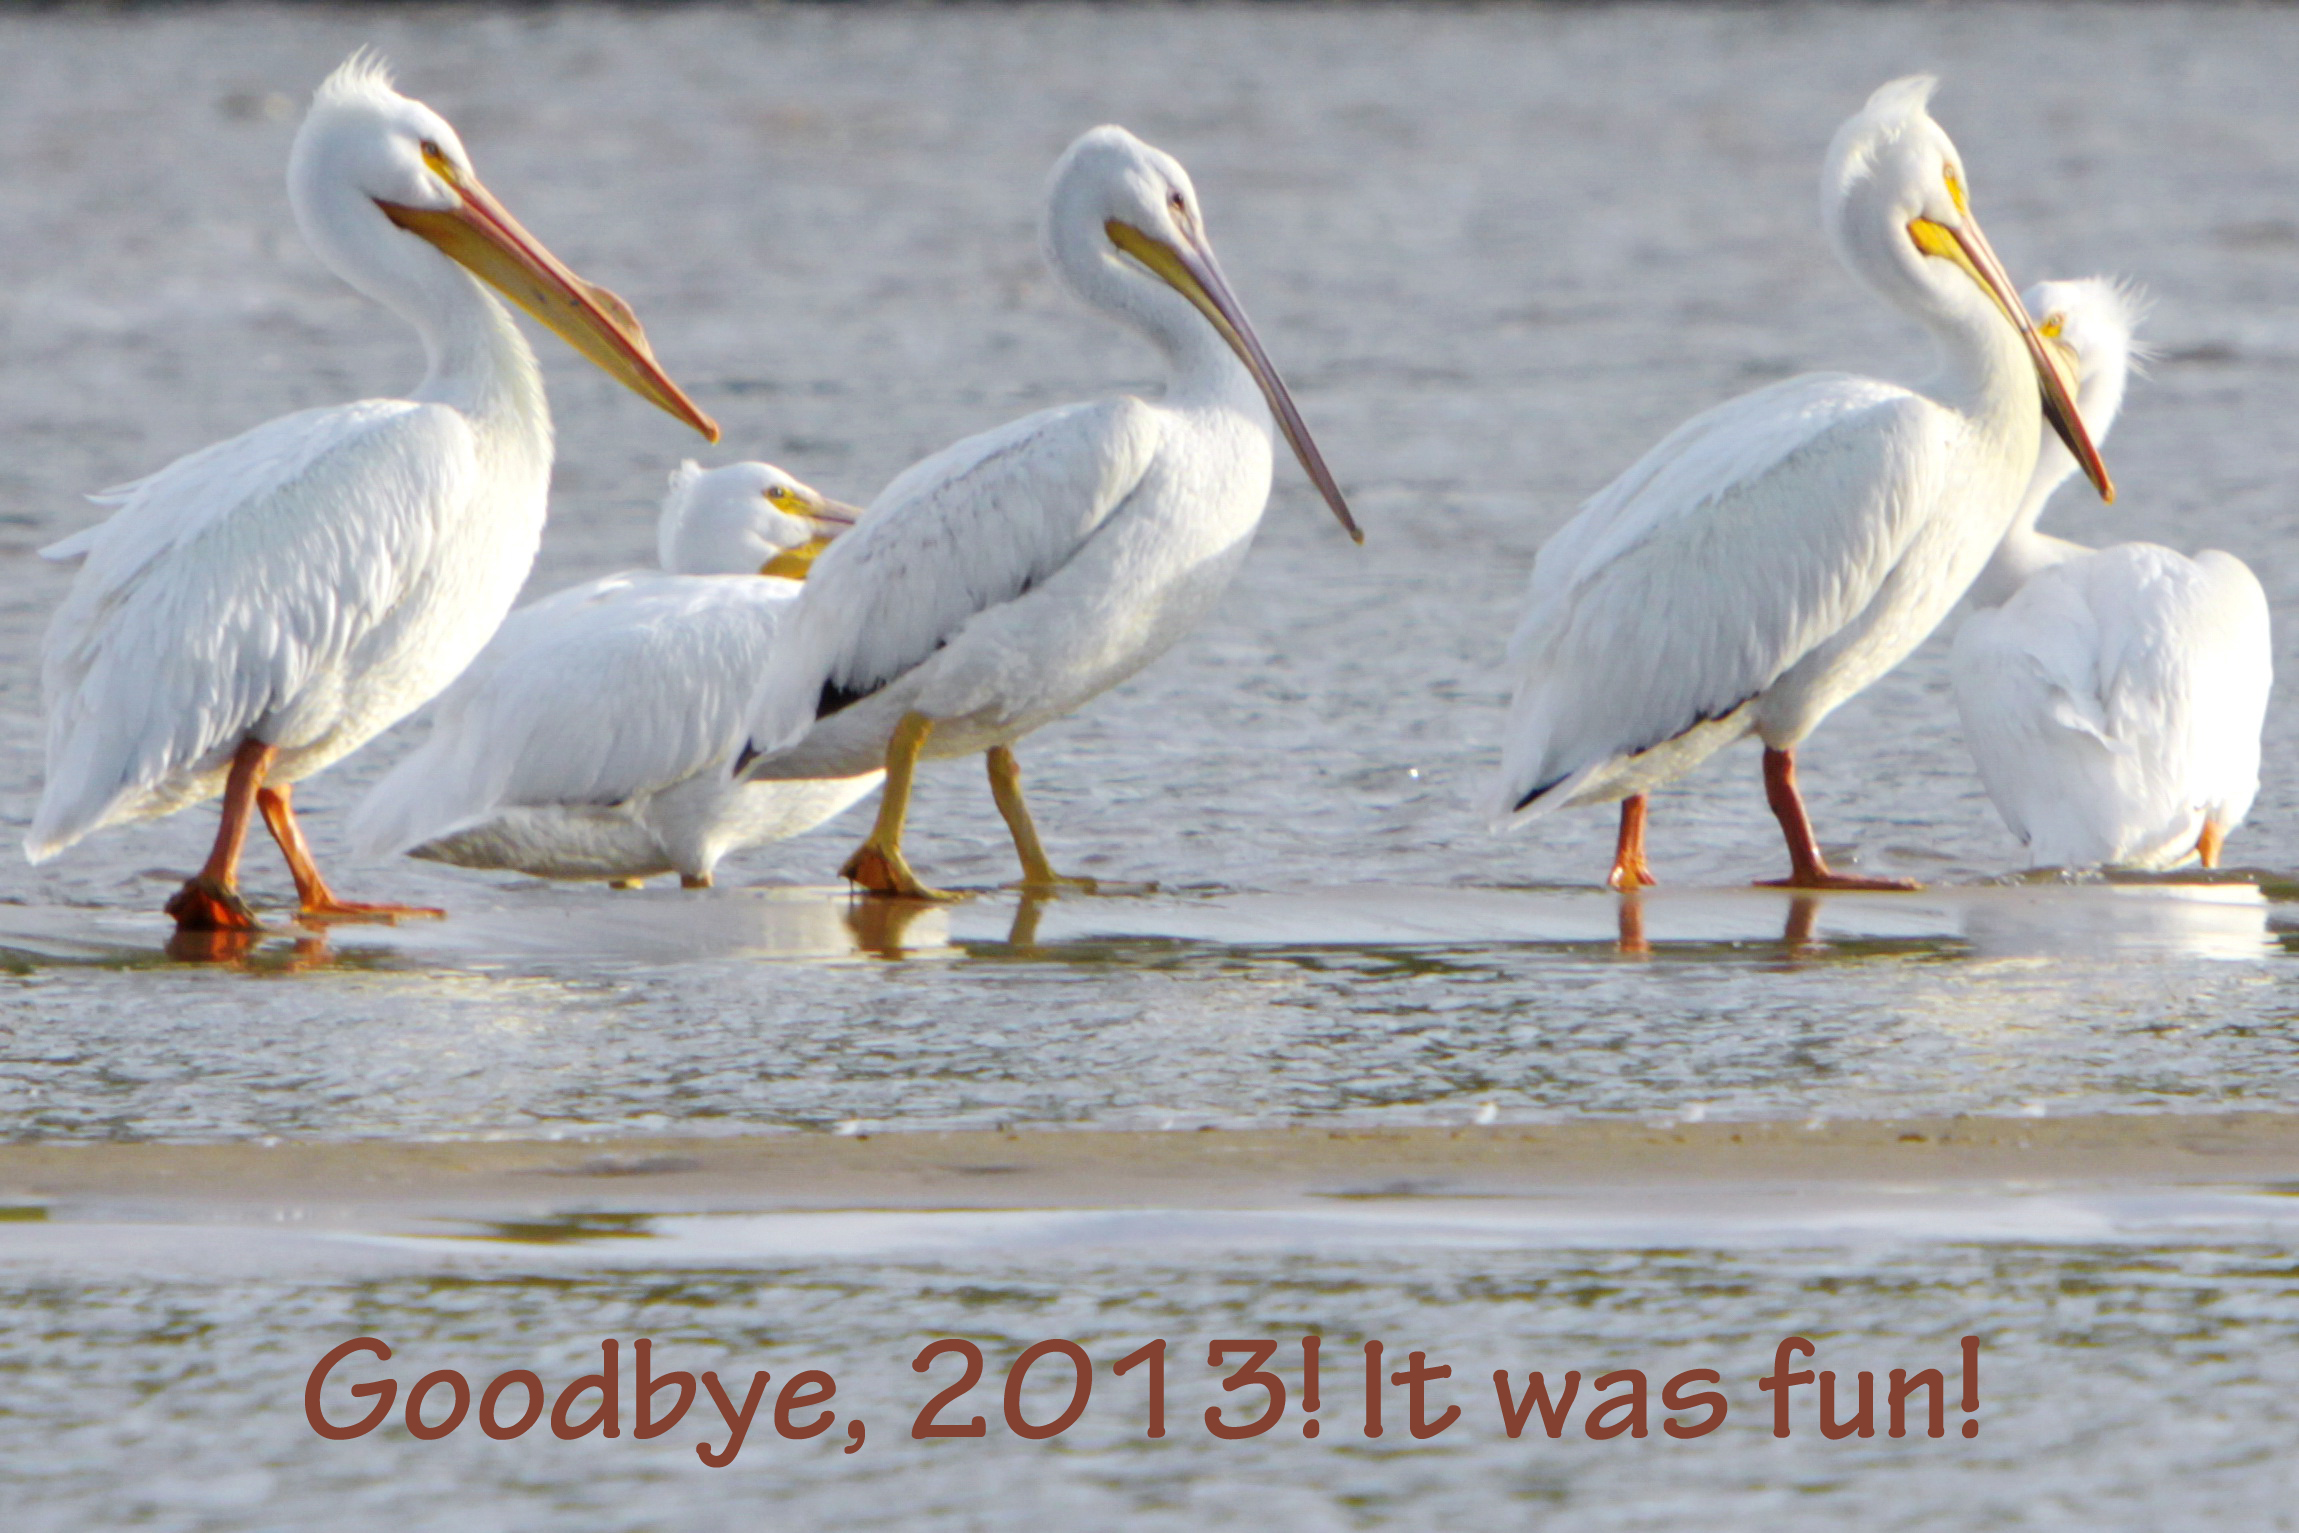 c. Dwight Pattison. My favorite picture that my husband took this year. Pelicans along the Arkansas River